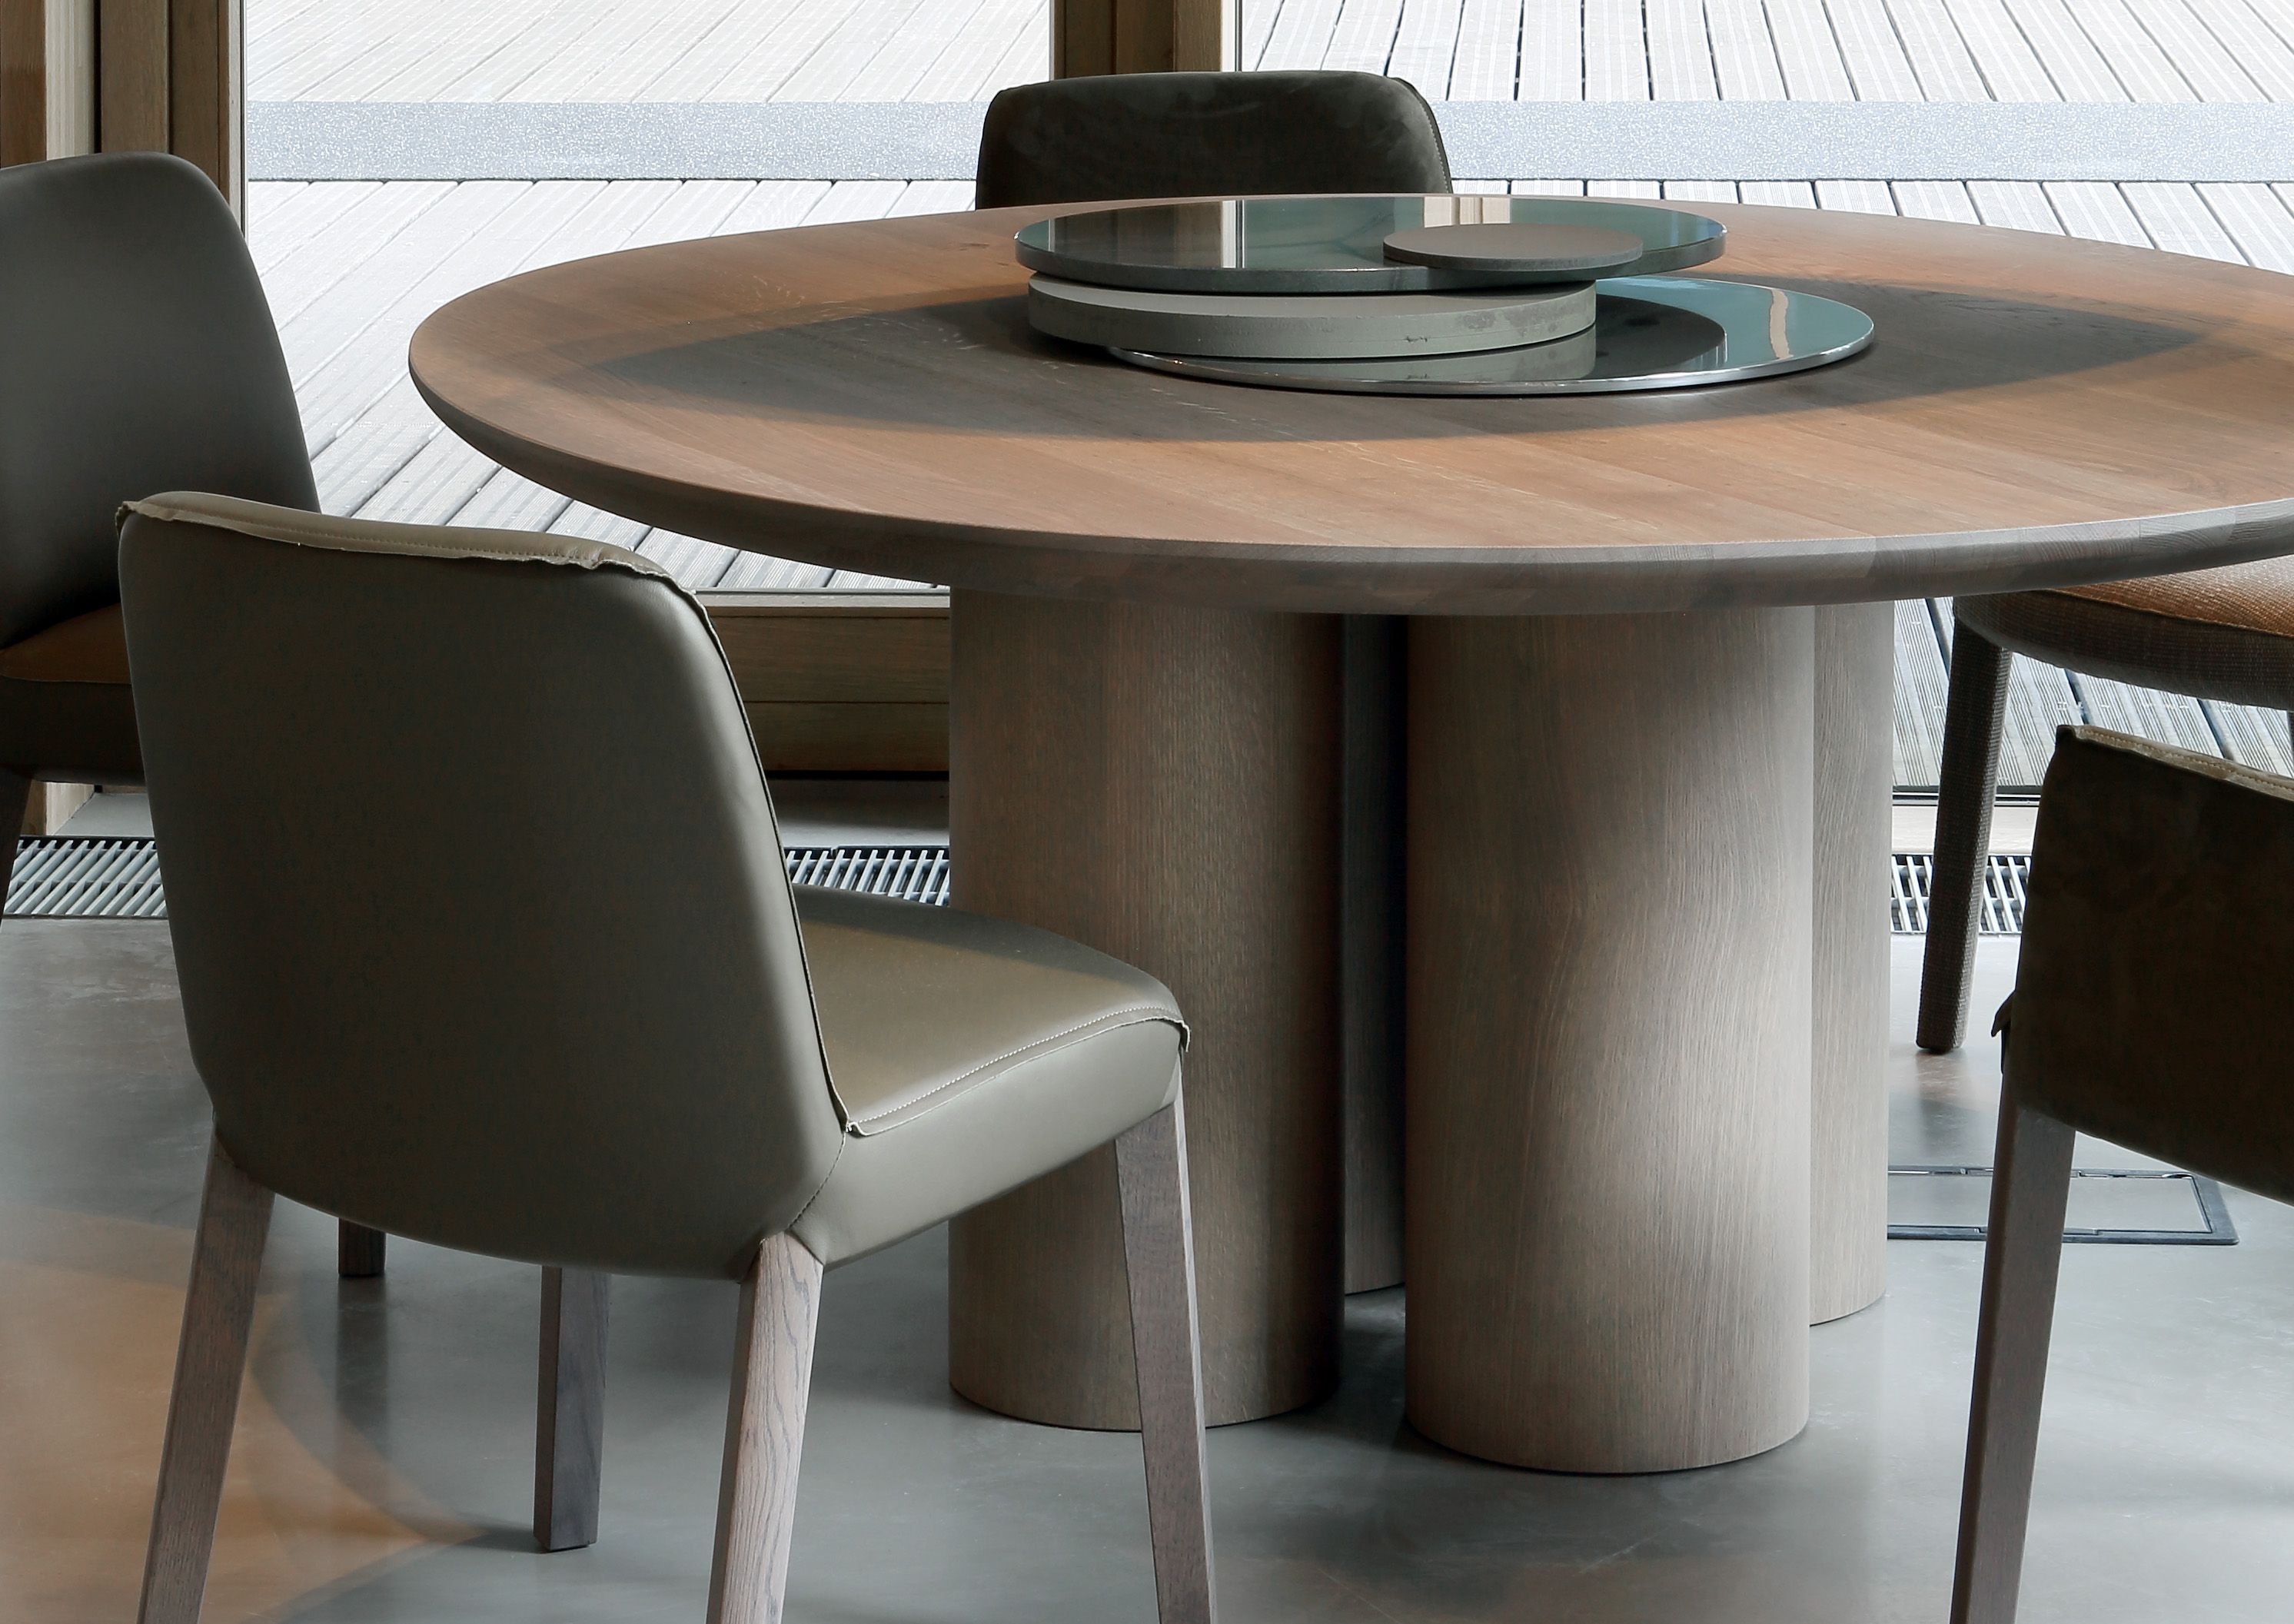 Piet boon collection piet boon® dinning area pinterest boon